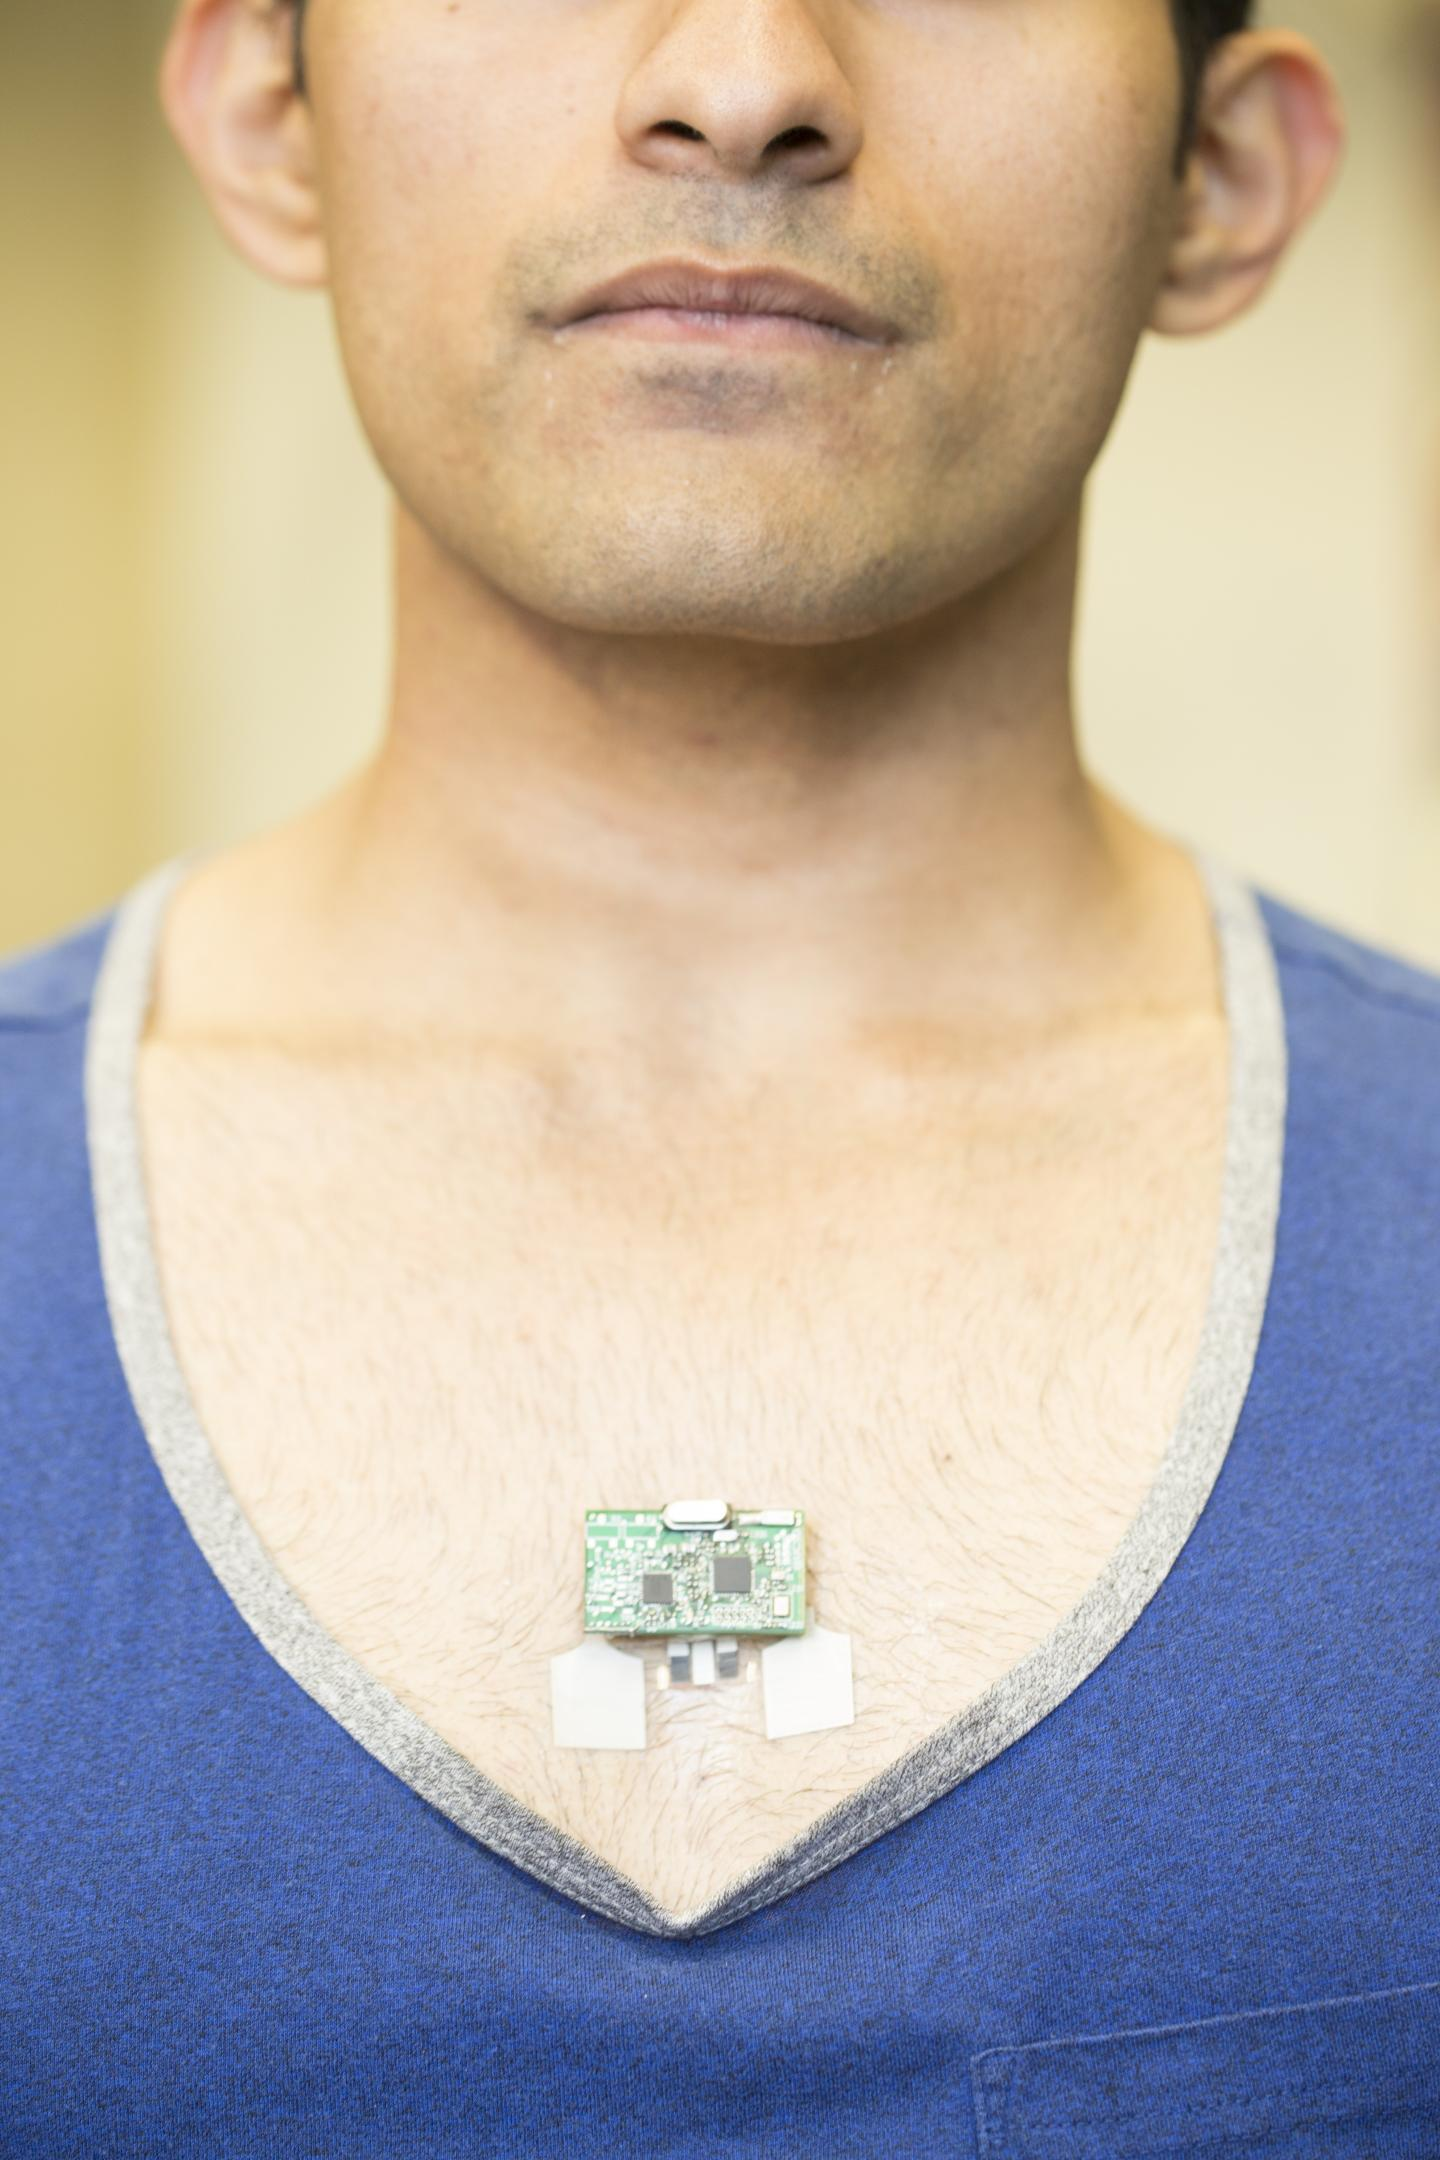 This Small, Flexible Patch Will Monitor Your Sweat